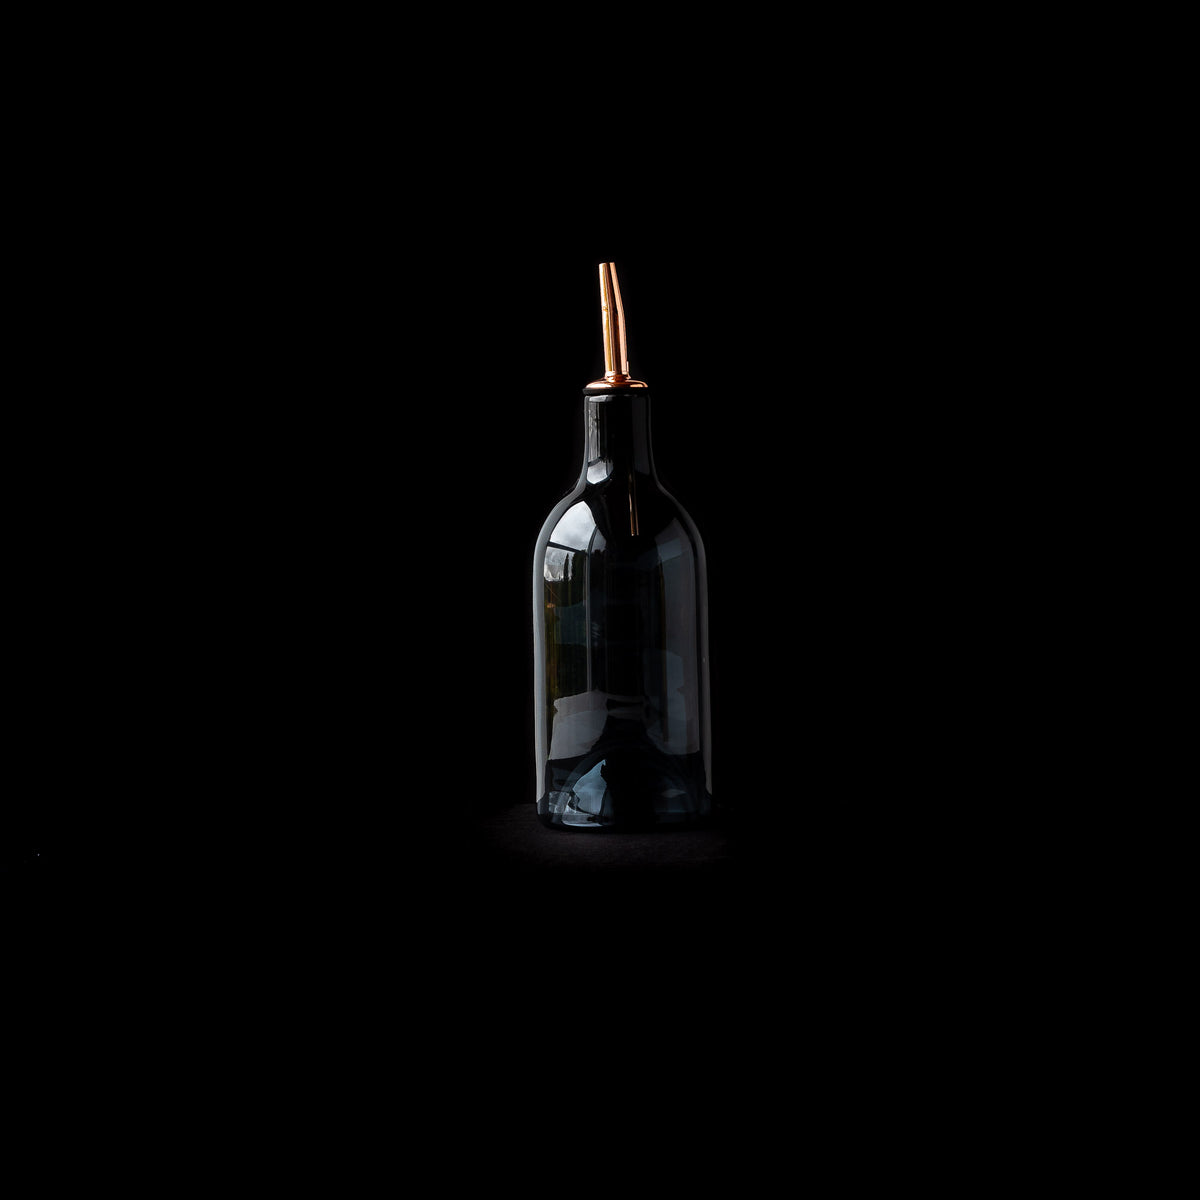 Grey Hand-blown Glass Oil / Vinegar Bottle on Black Background - Sold by Chic & Basta